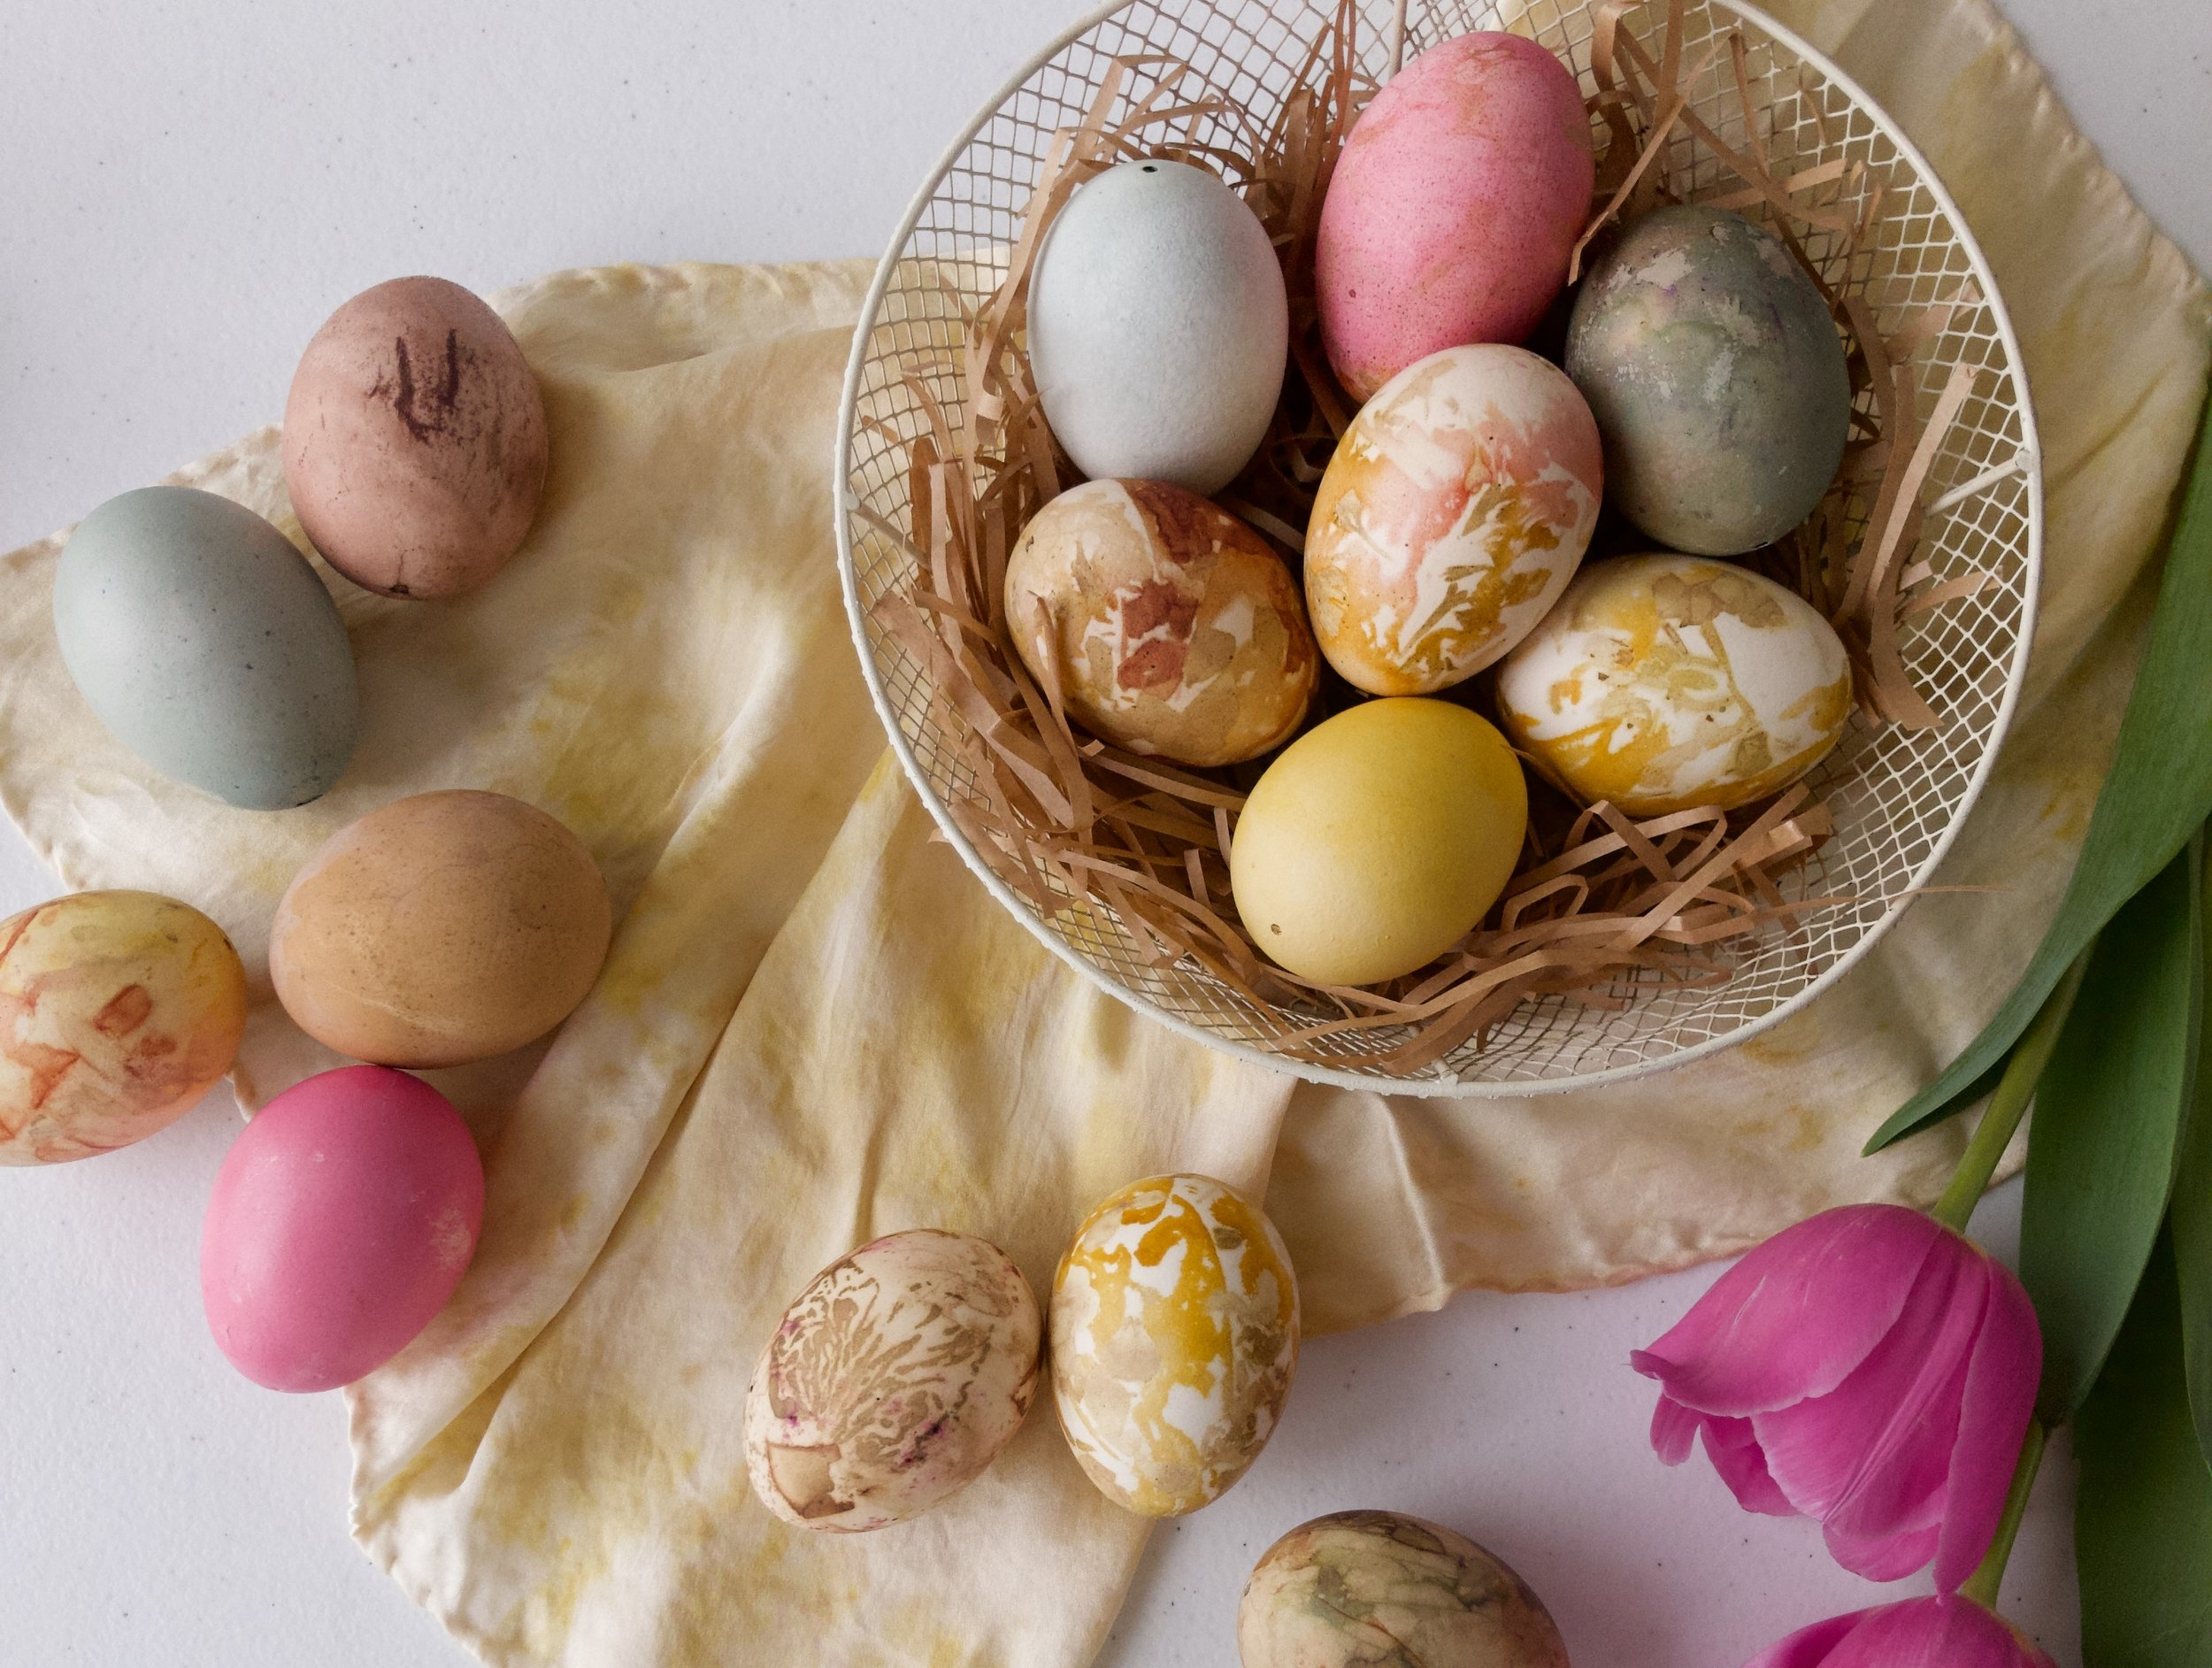 dye_easter_eggs_naturally_with_fruit_veg_flowers.JPG